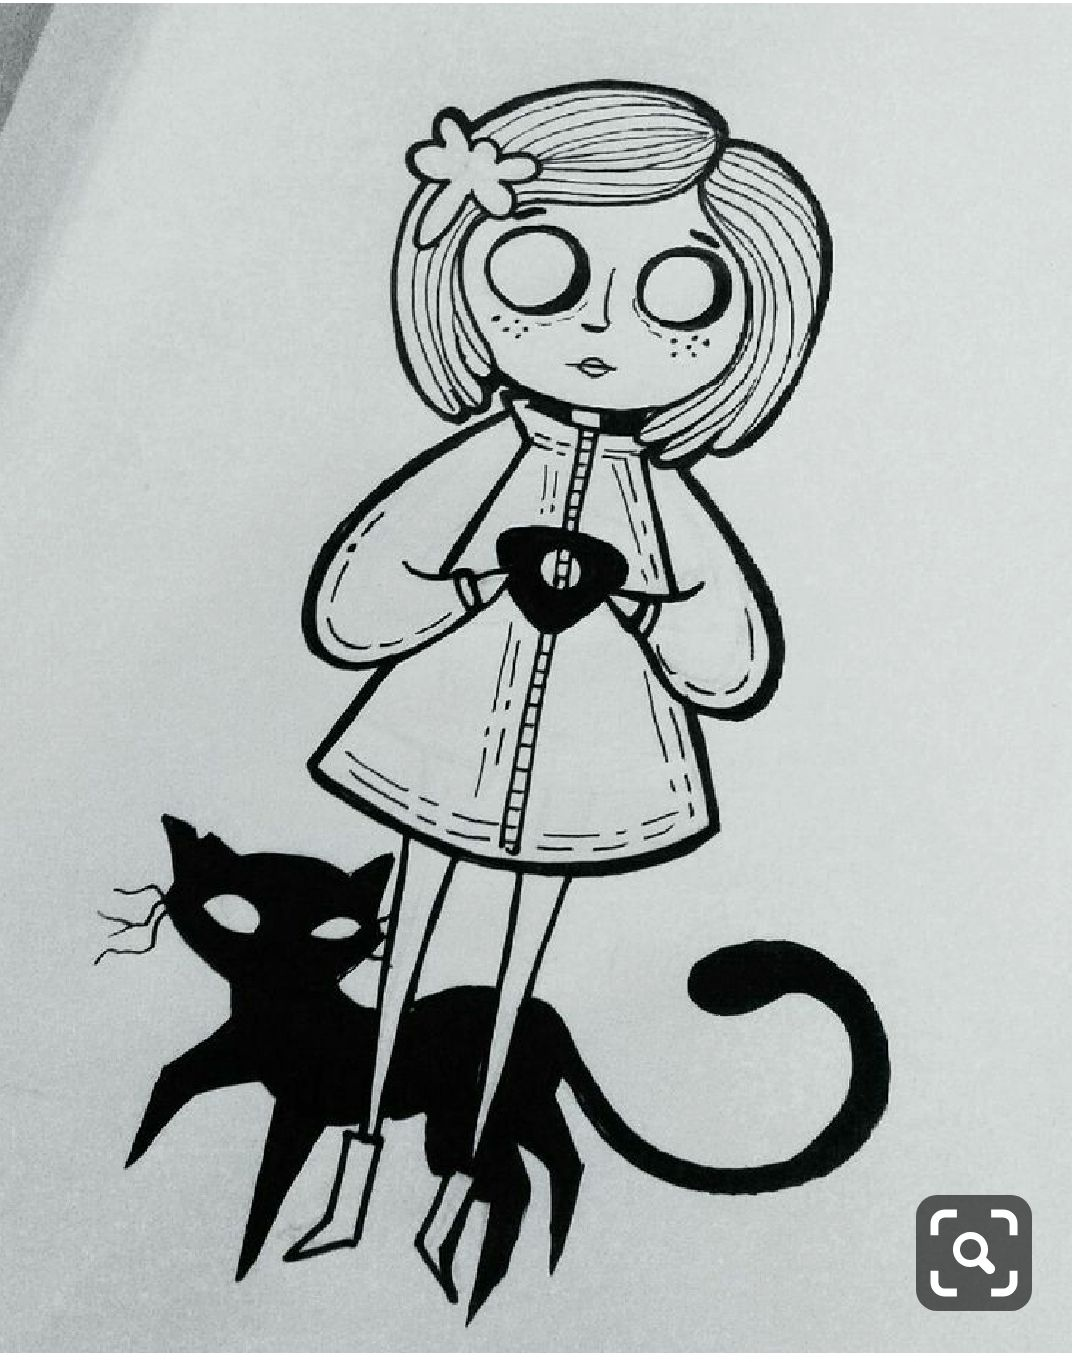 Coraline Tattoo Coraline Art Coraline Tattoo Art Sketches